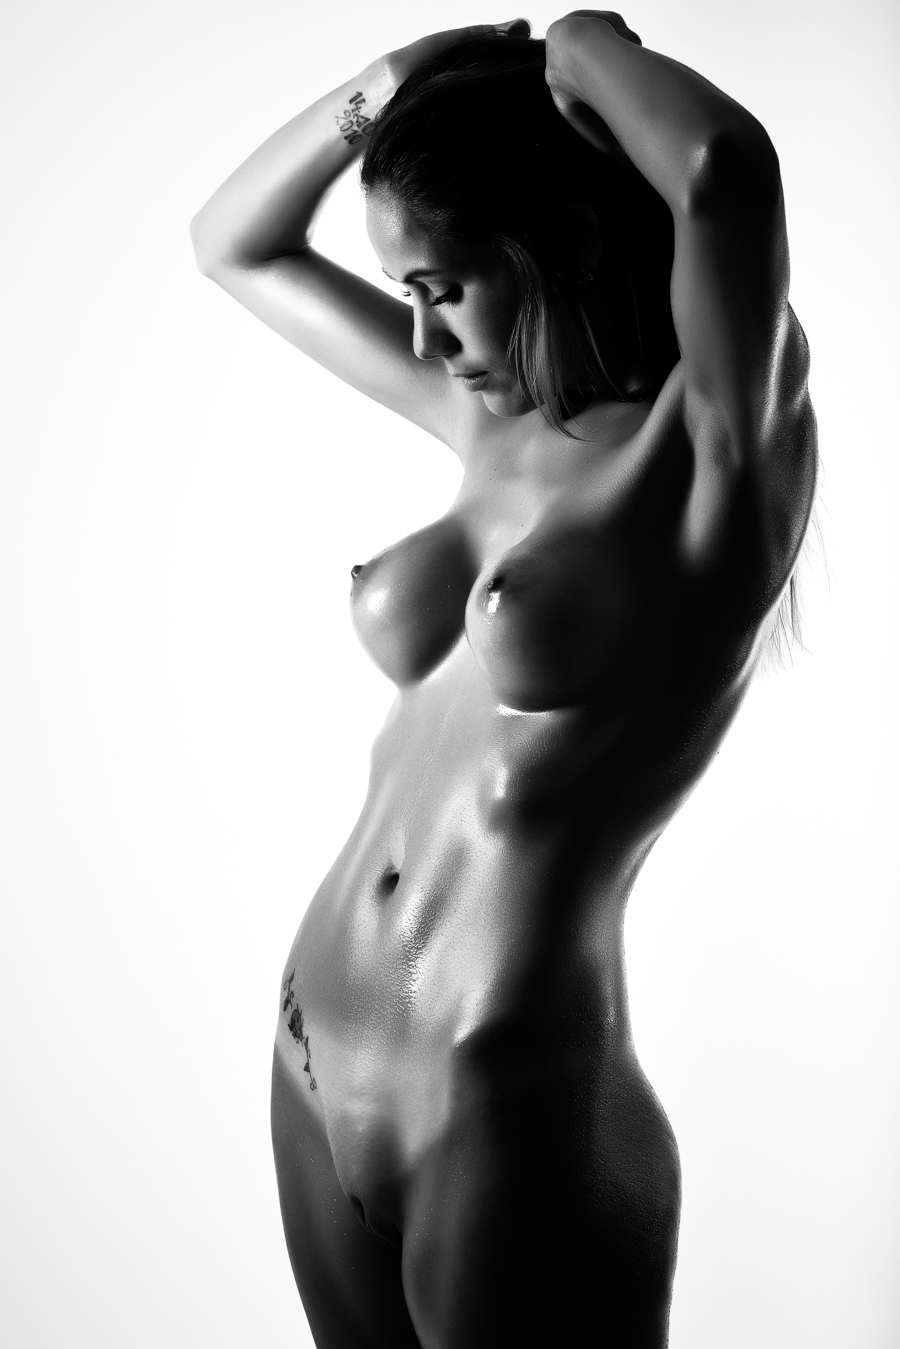 Young naked woman standing against white background. Perfect skin. Black and white photograph